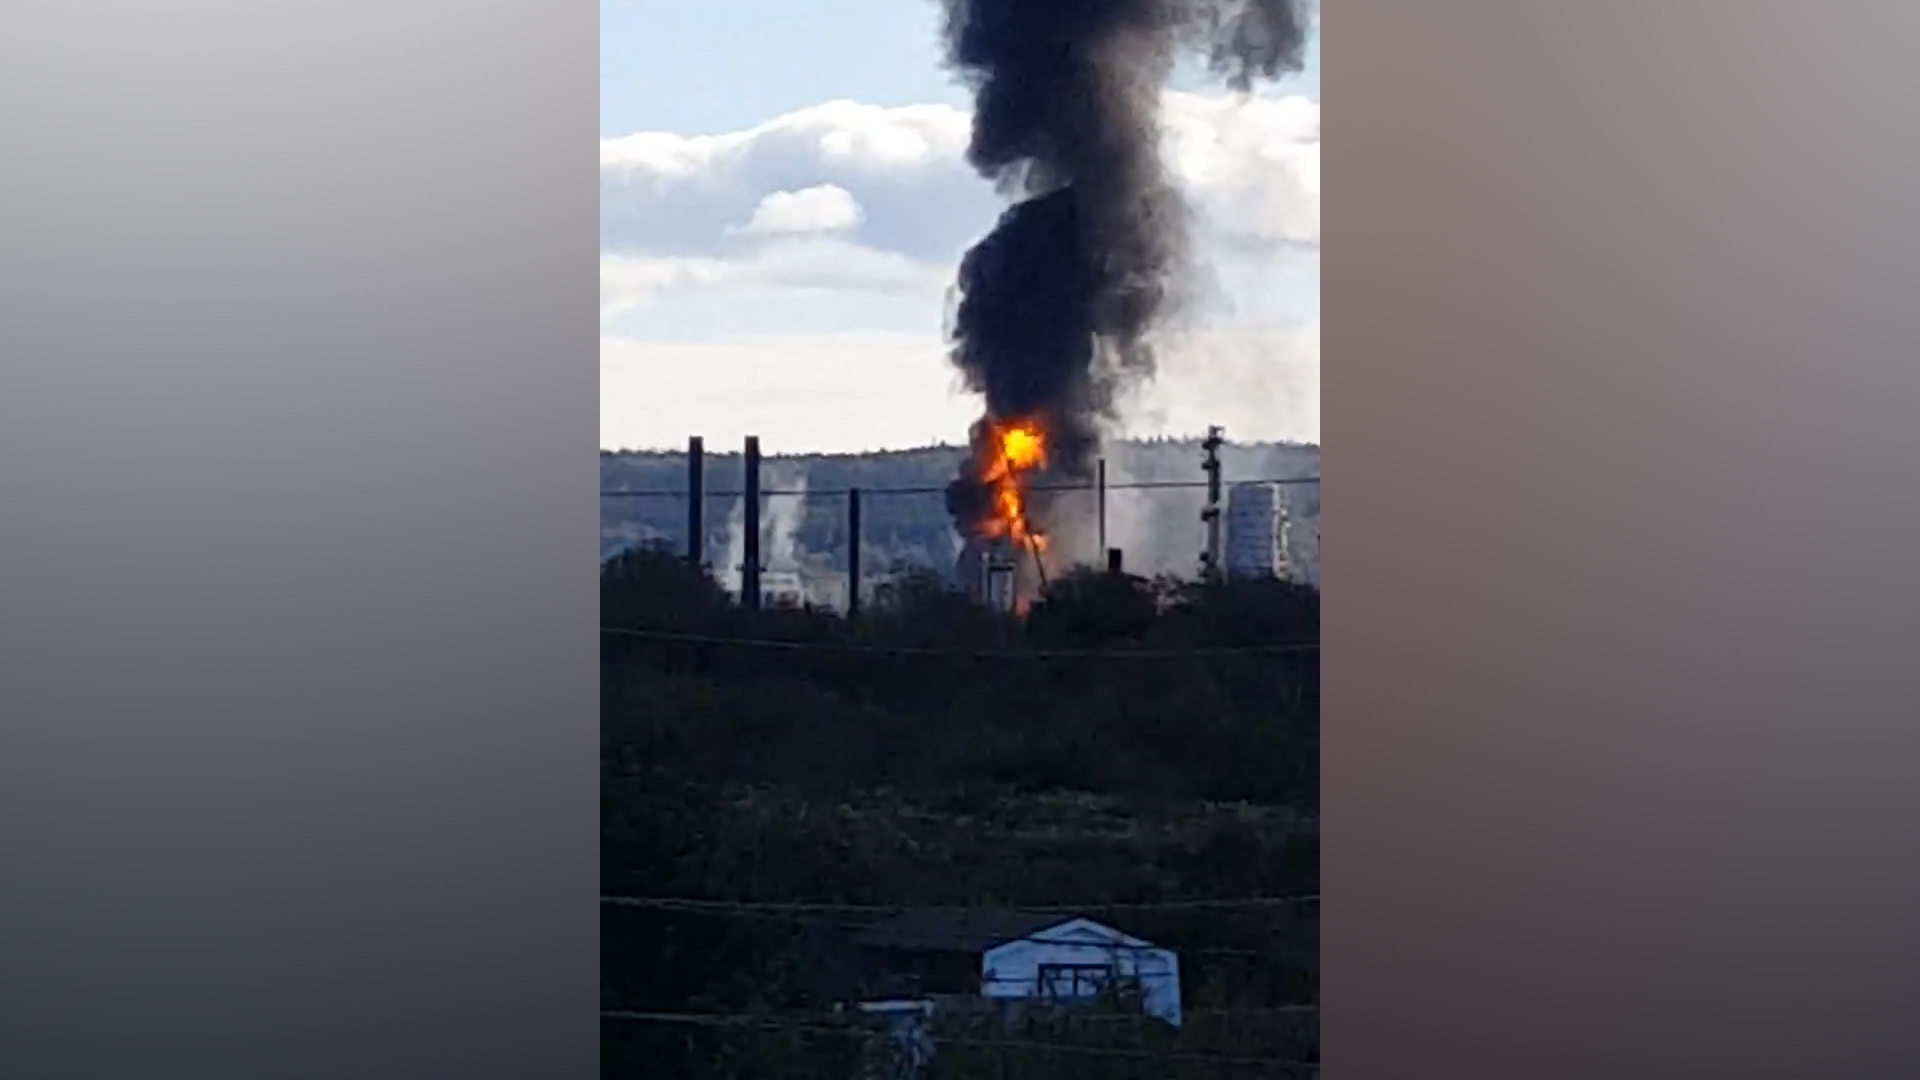 Explosion reported at Irving Oil refinery in Saint John